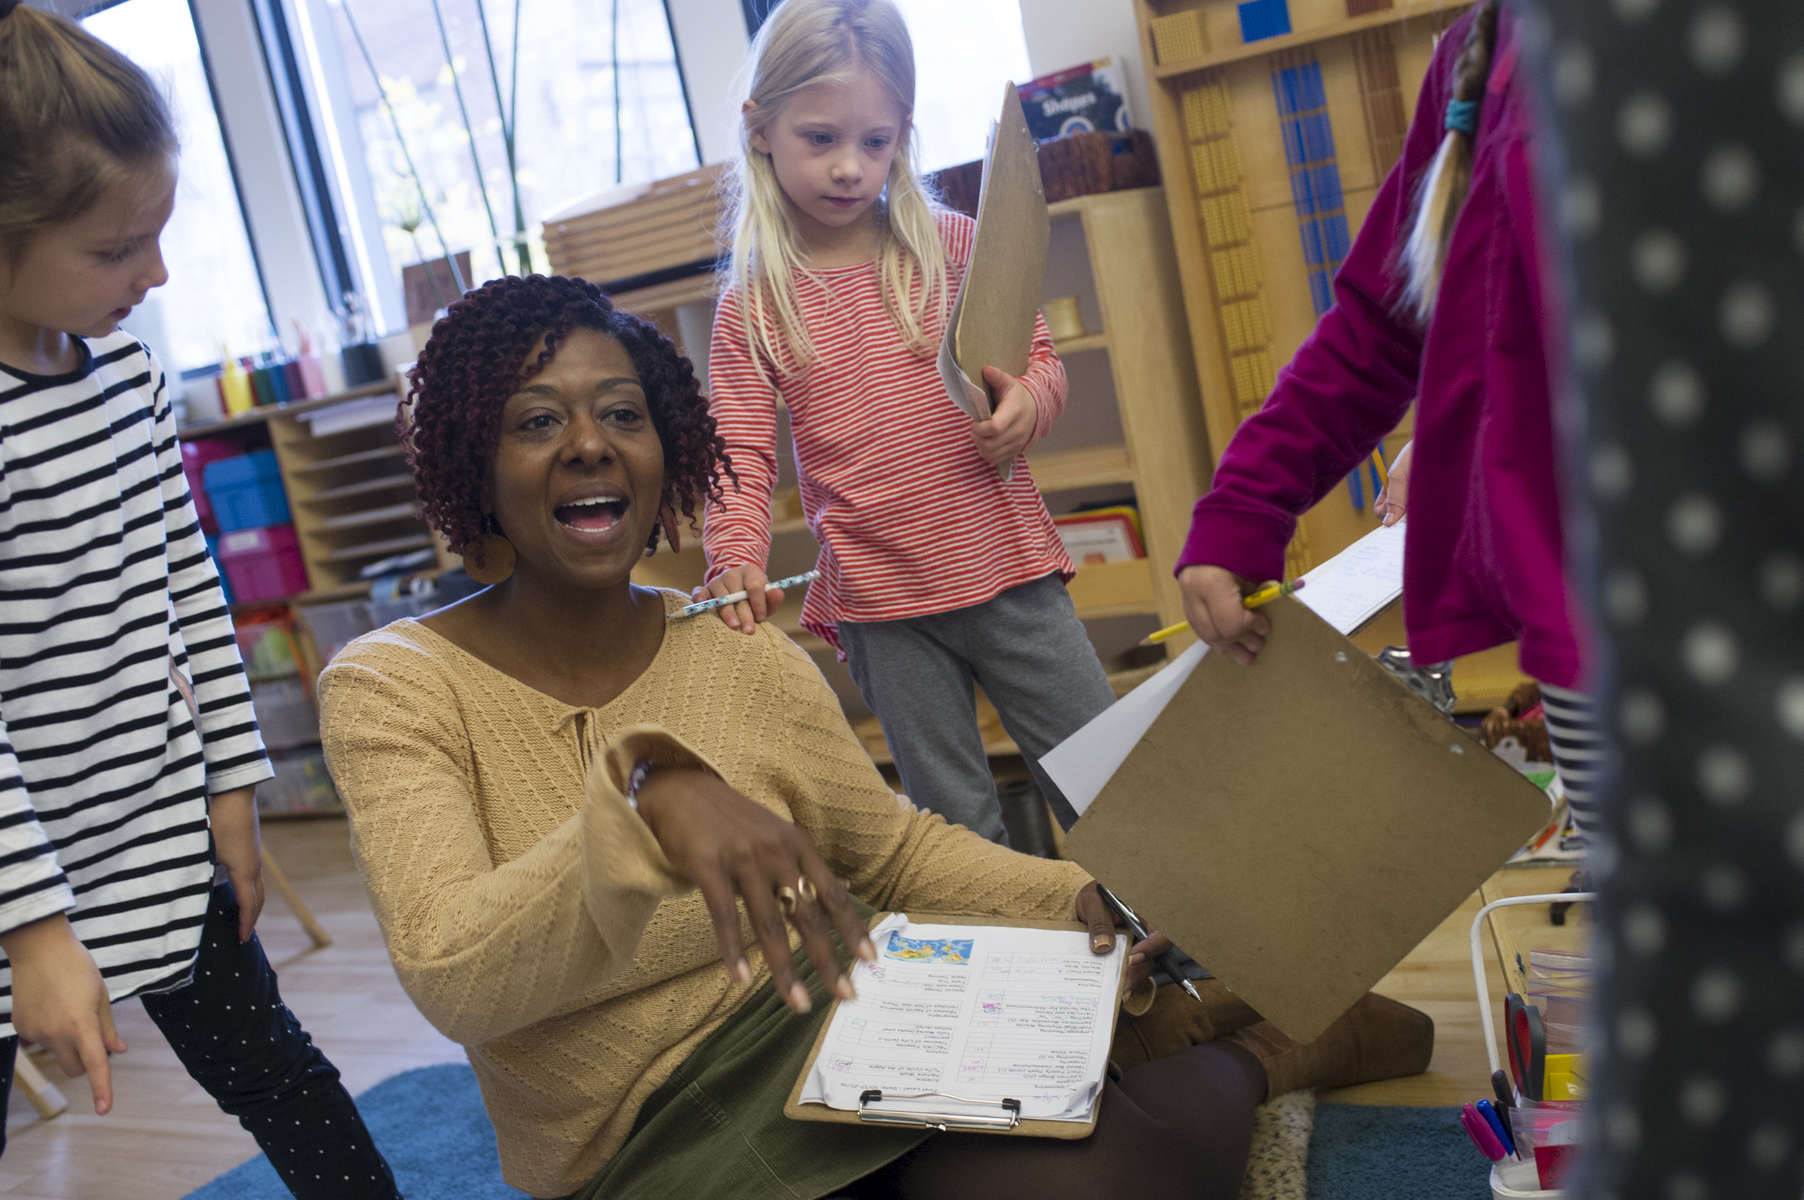 Classroom co-teacher Carmenita Peoples works with several of her students on their work plans in the mixed age class of 6 year-olds to 9 year-olds at the Montessori Academy of Chicago, October 20, 2016.